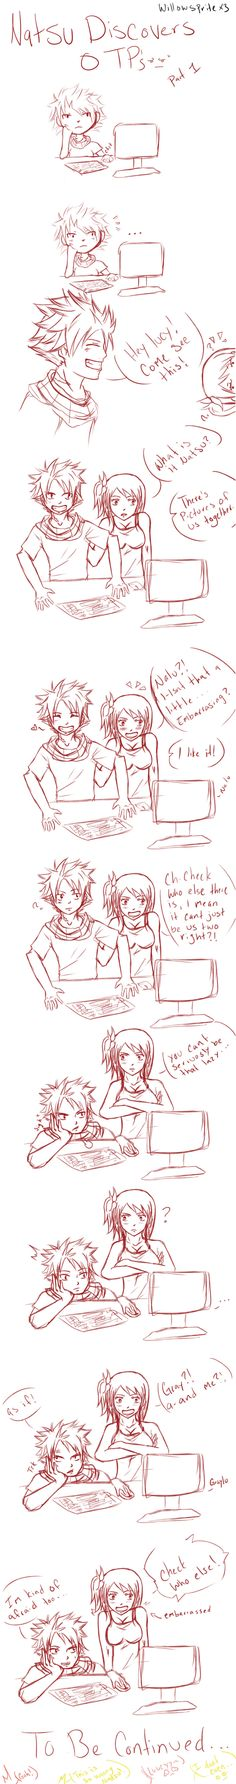 Natsu discovers OTP's - Nalu I by willowspritex3.deviantart.com on @deviantART || i need another part..